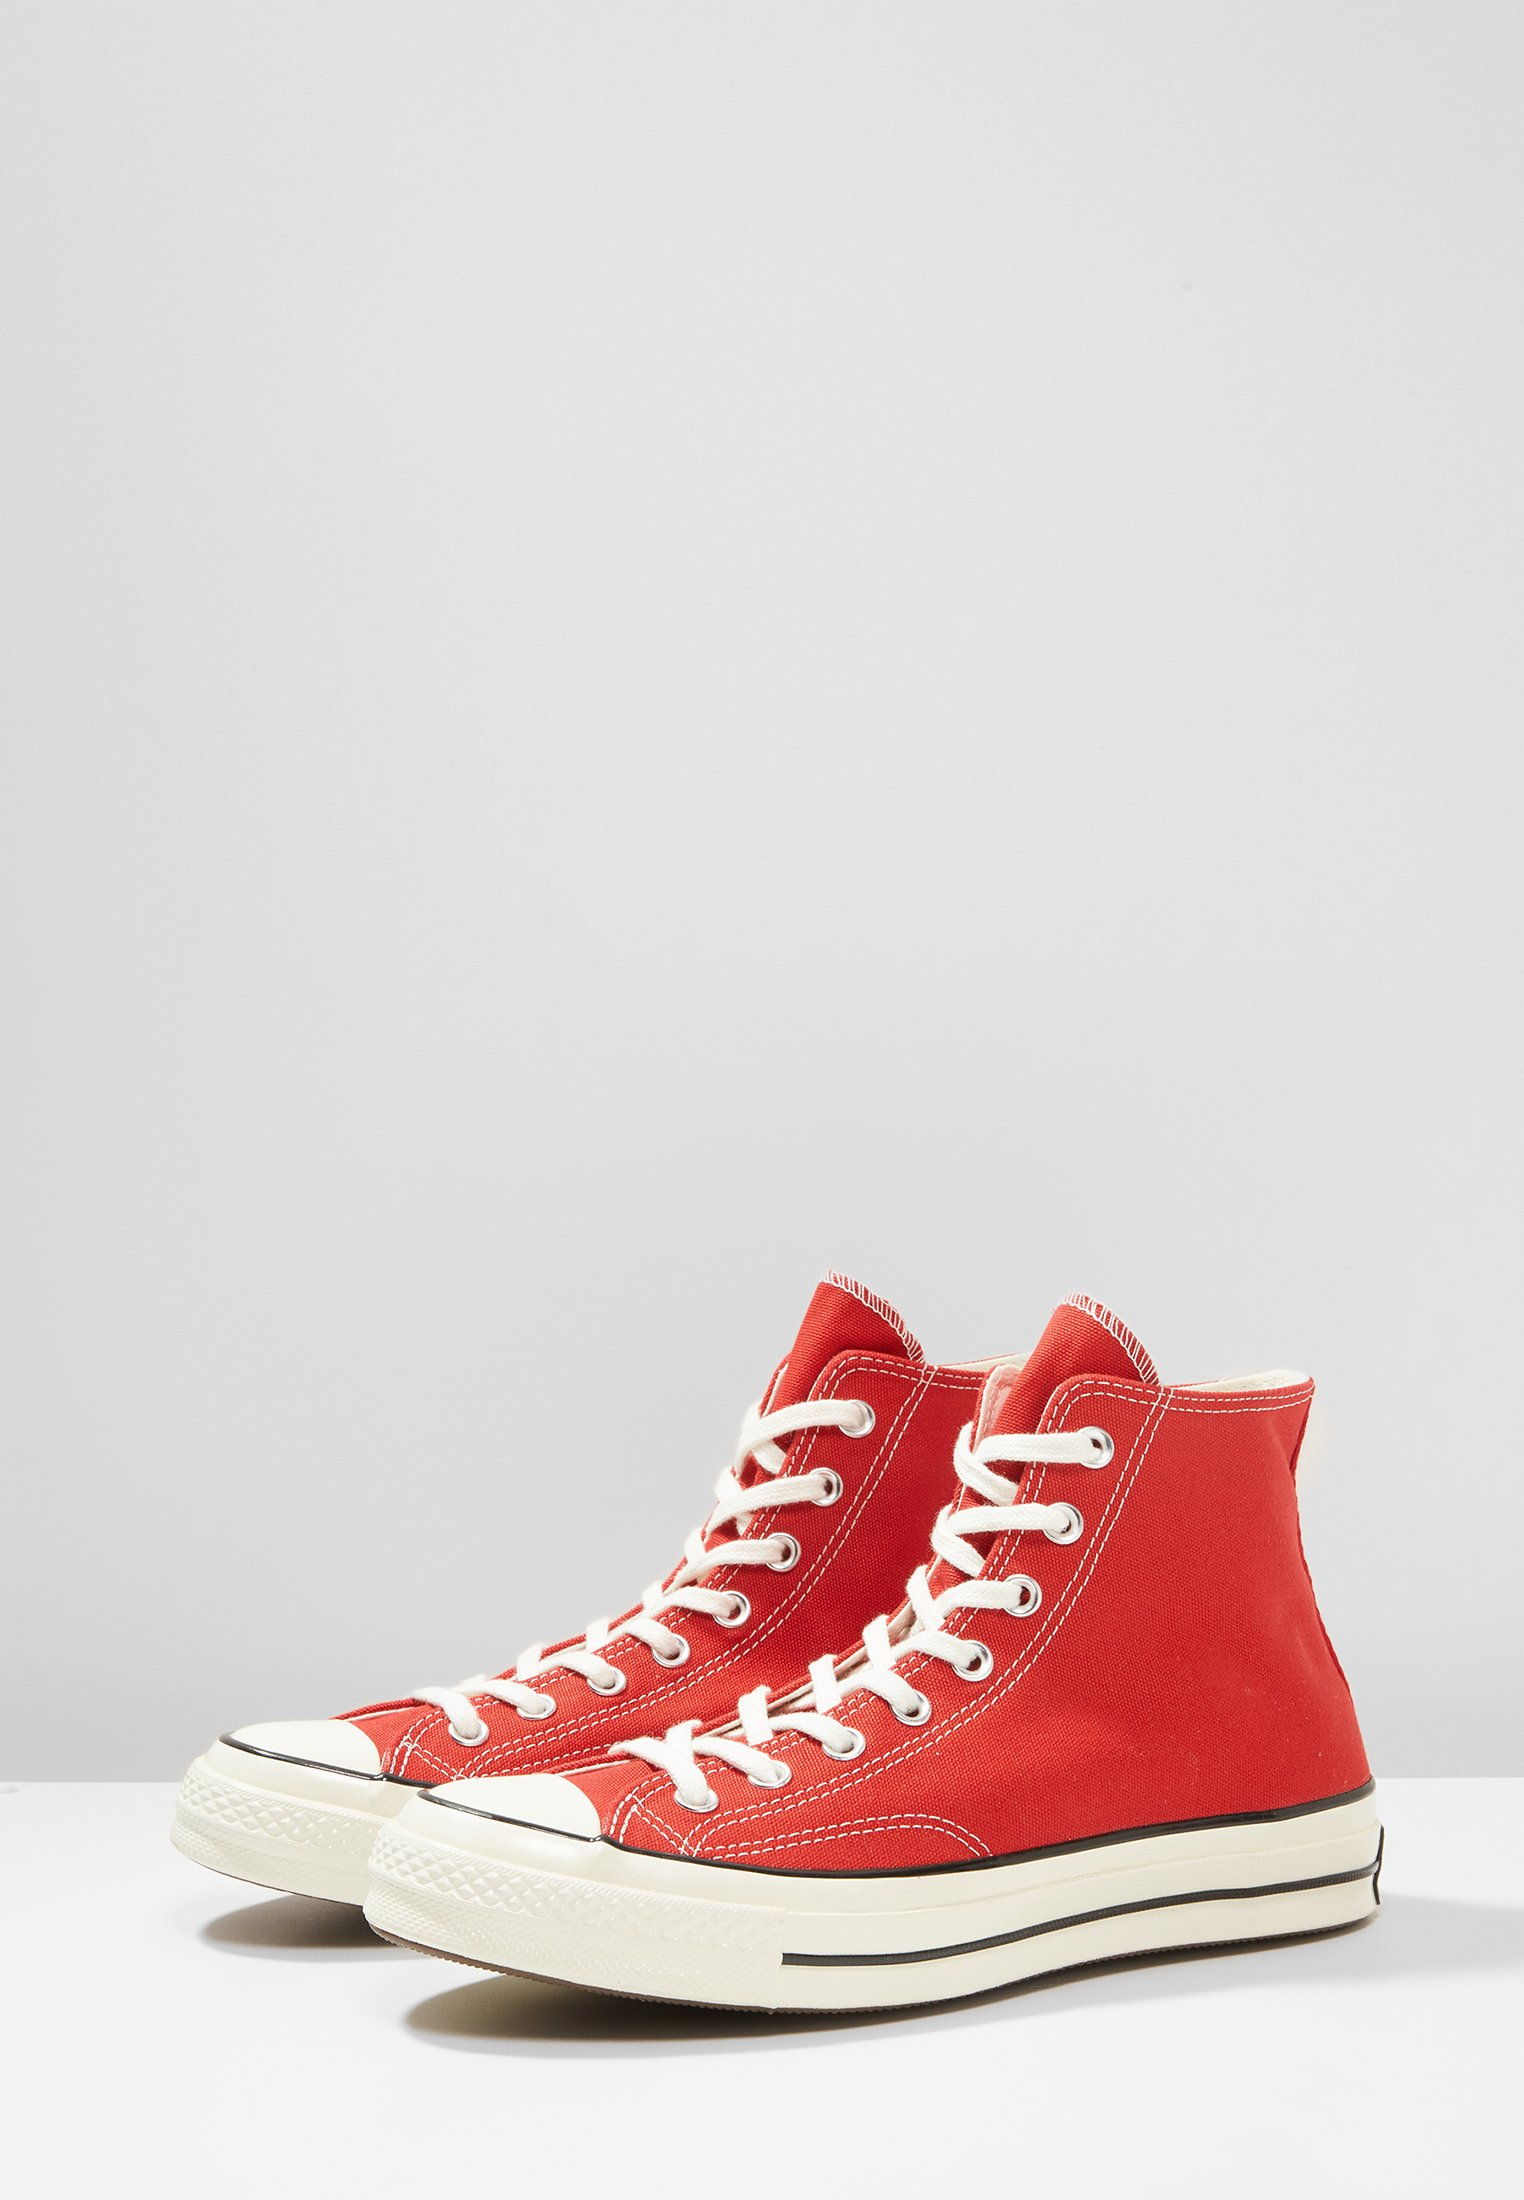 Converse CHUCK TAYLOR ALL STAR HI ALWAYS ON - Sneaker high - enamel red/rot - Herrenschuhe 1fXHu